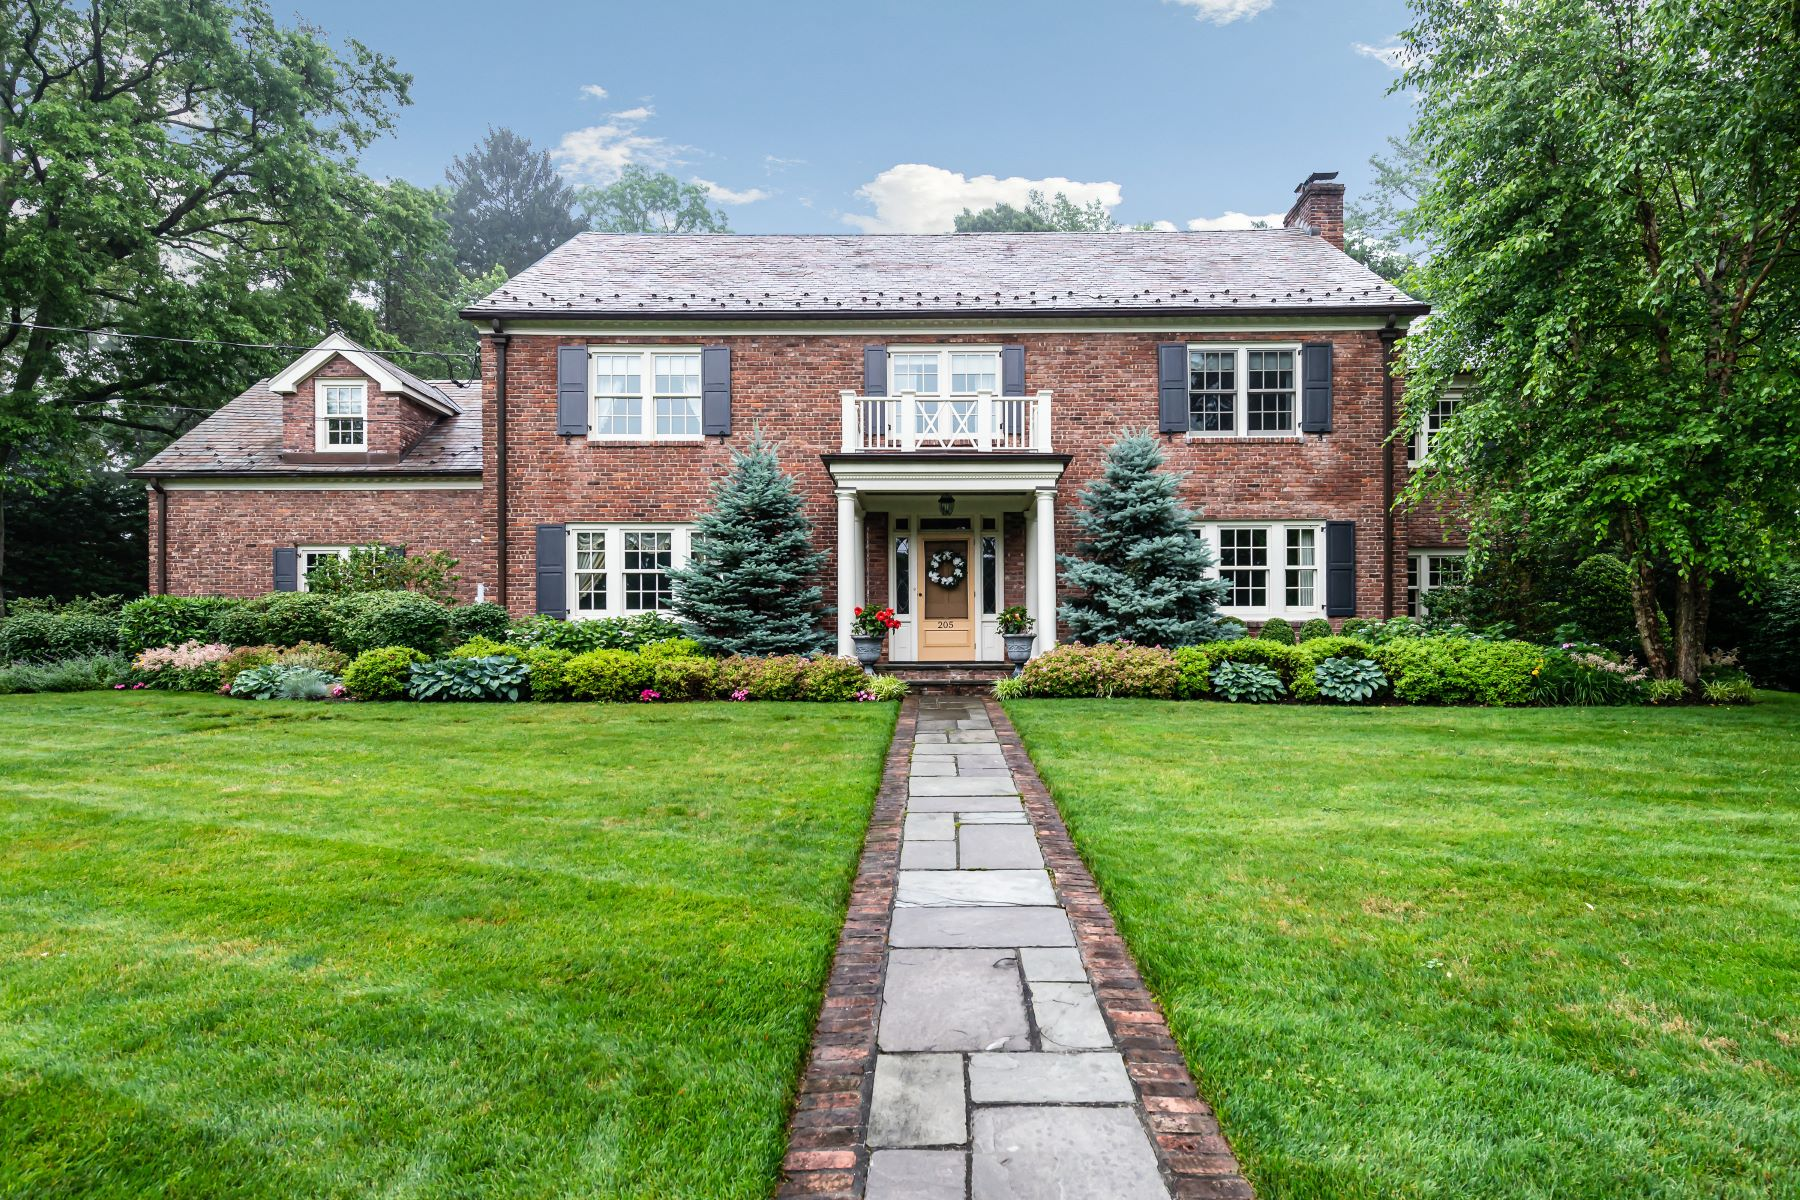 Single Family Homes for Active at Manhasset 205 Circle Dr Manhasset, New York 11030 United States